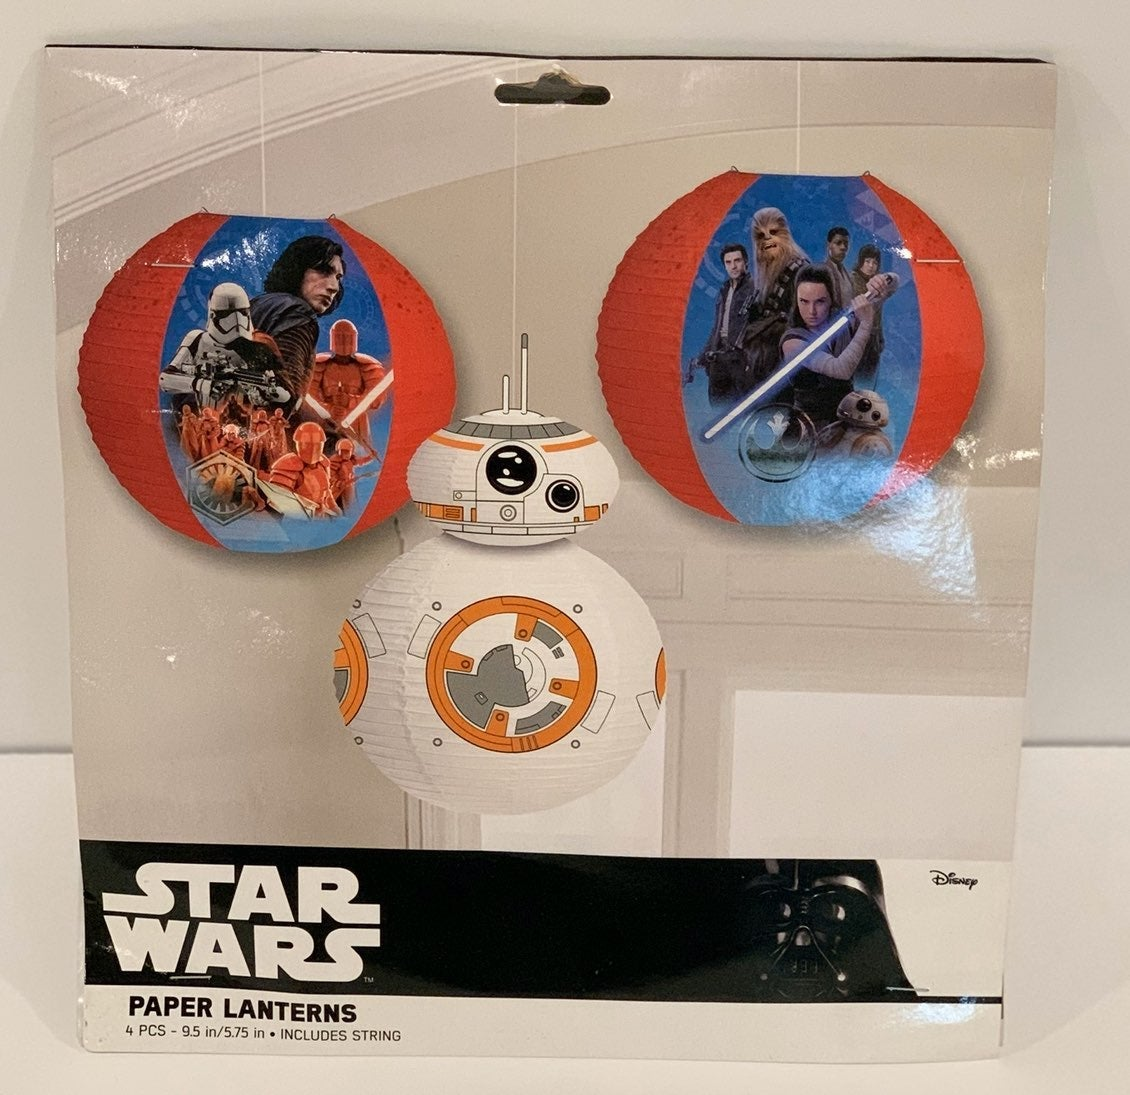 Star Wars 3-Pack Paper Lanterns